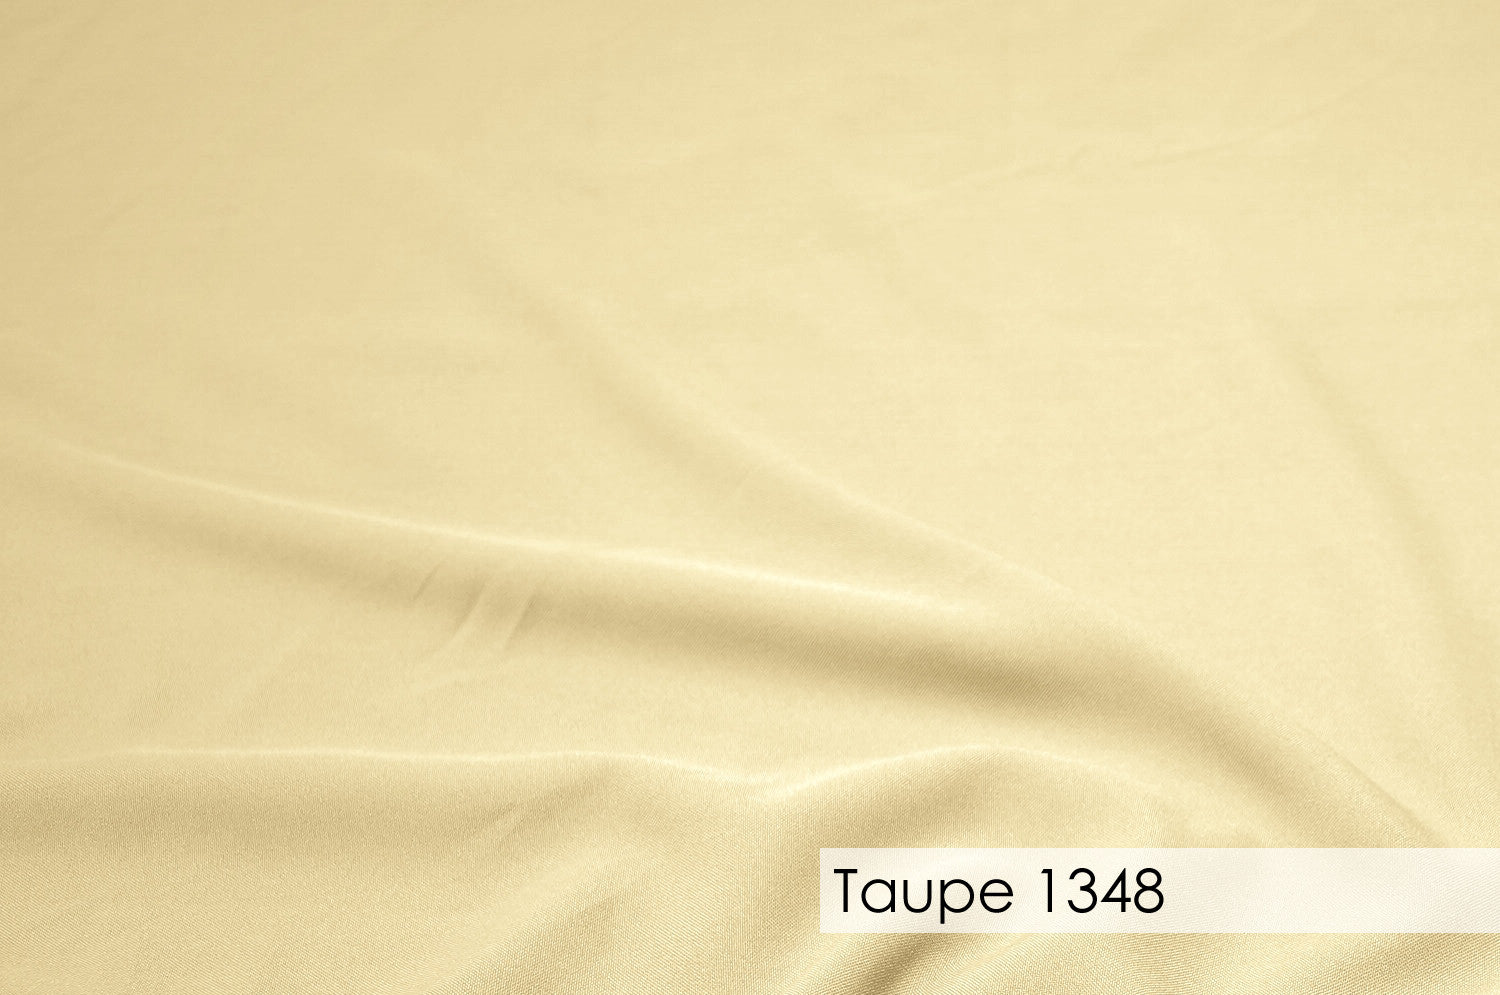 TAUPE 1348